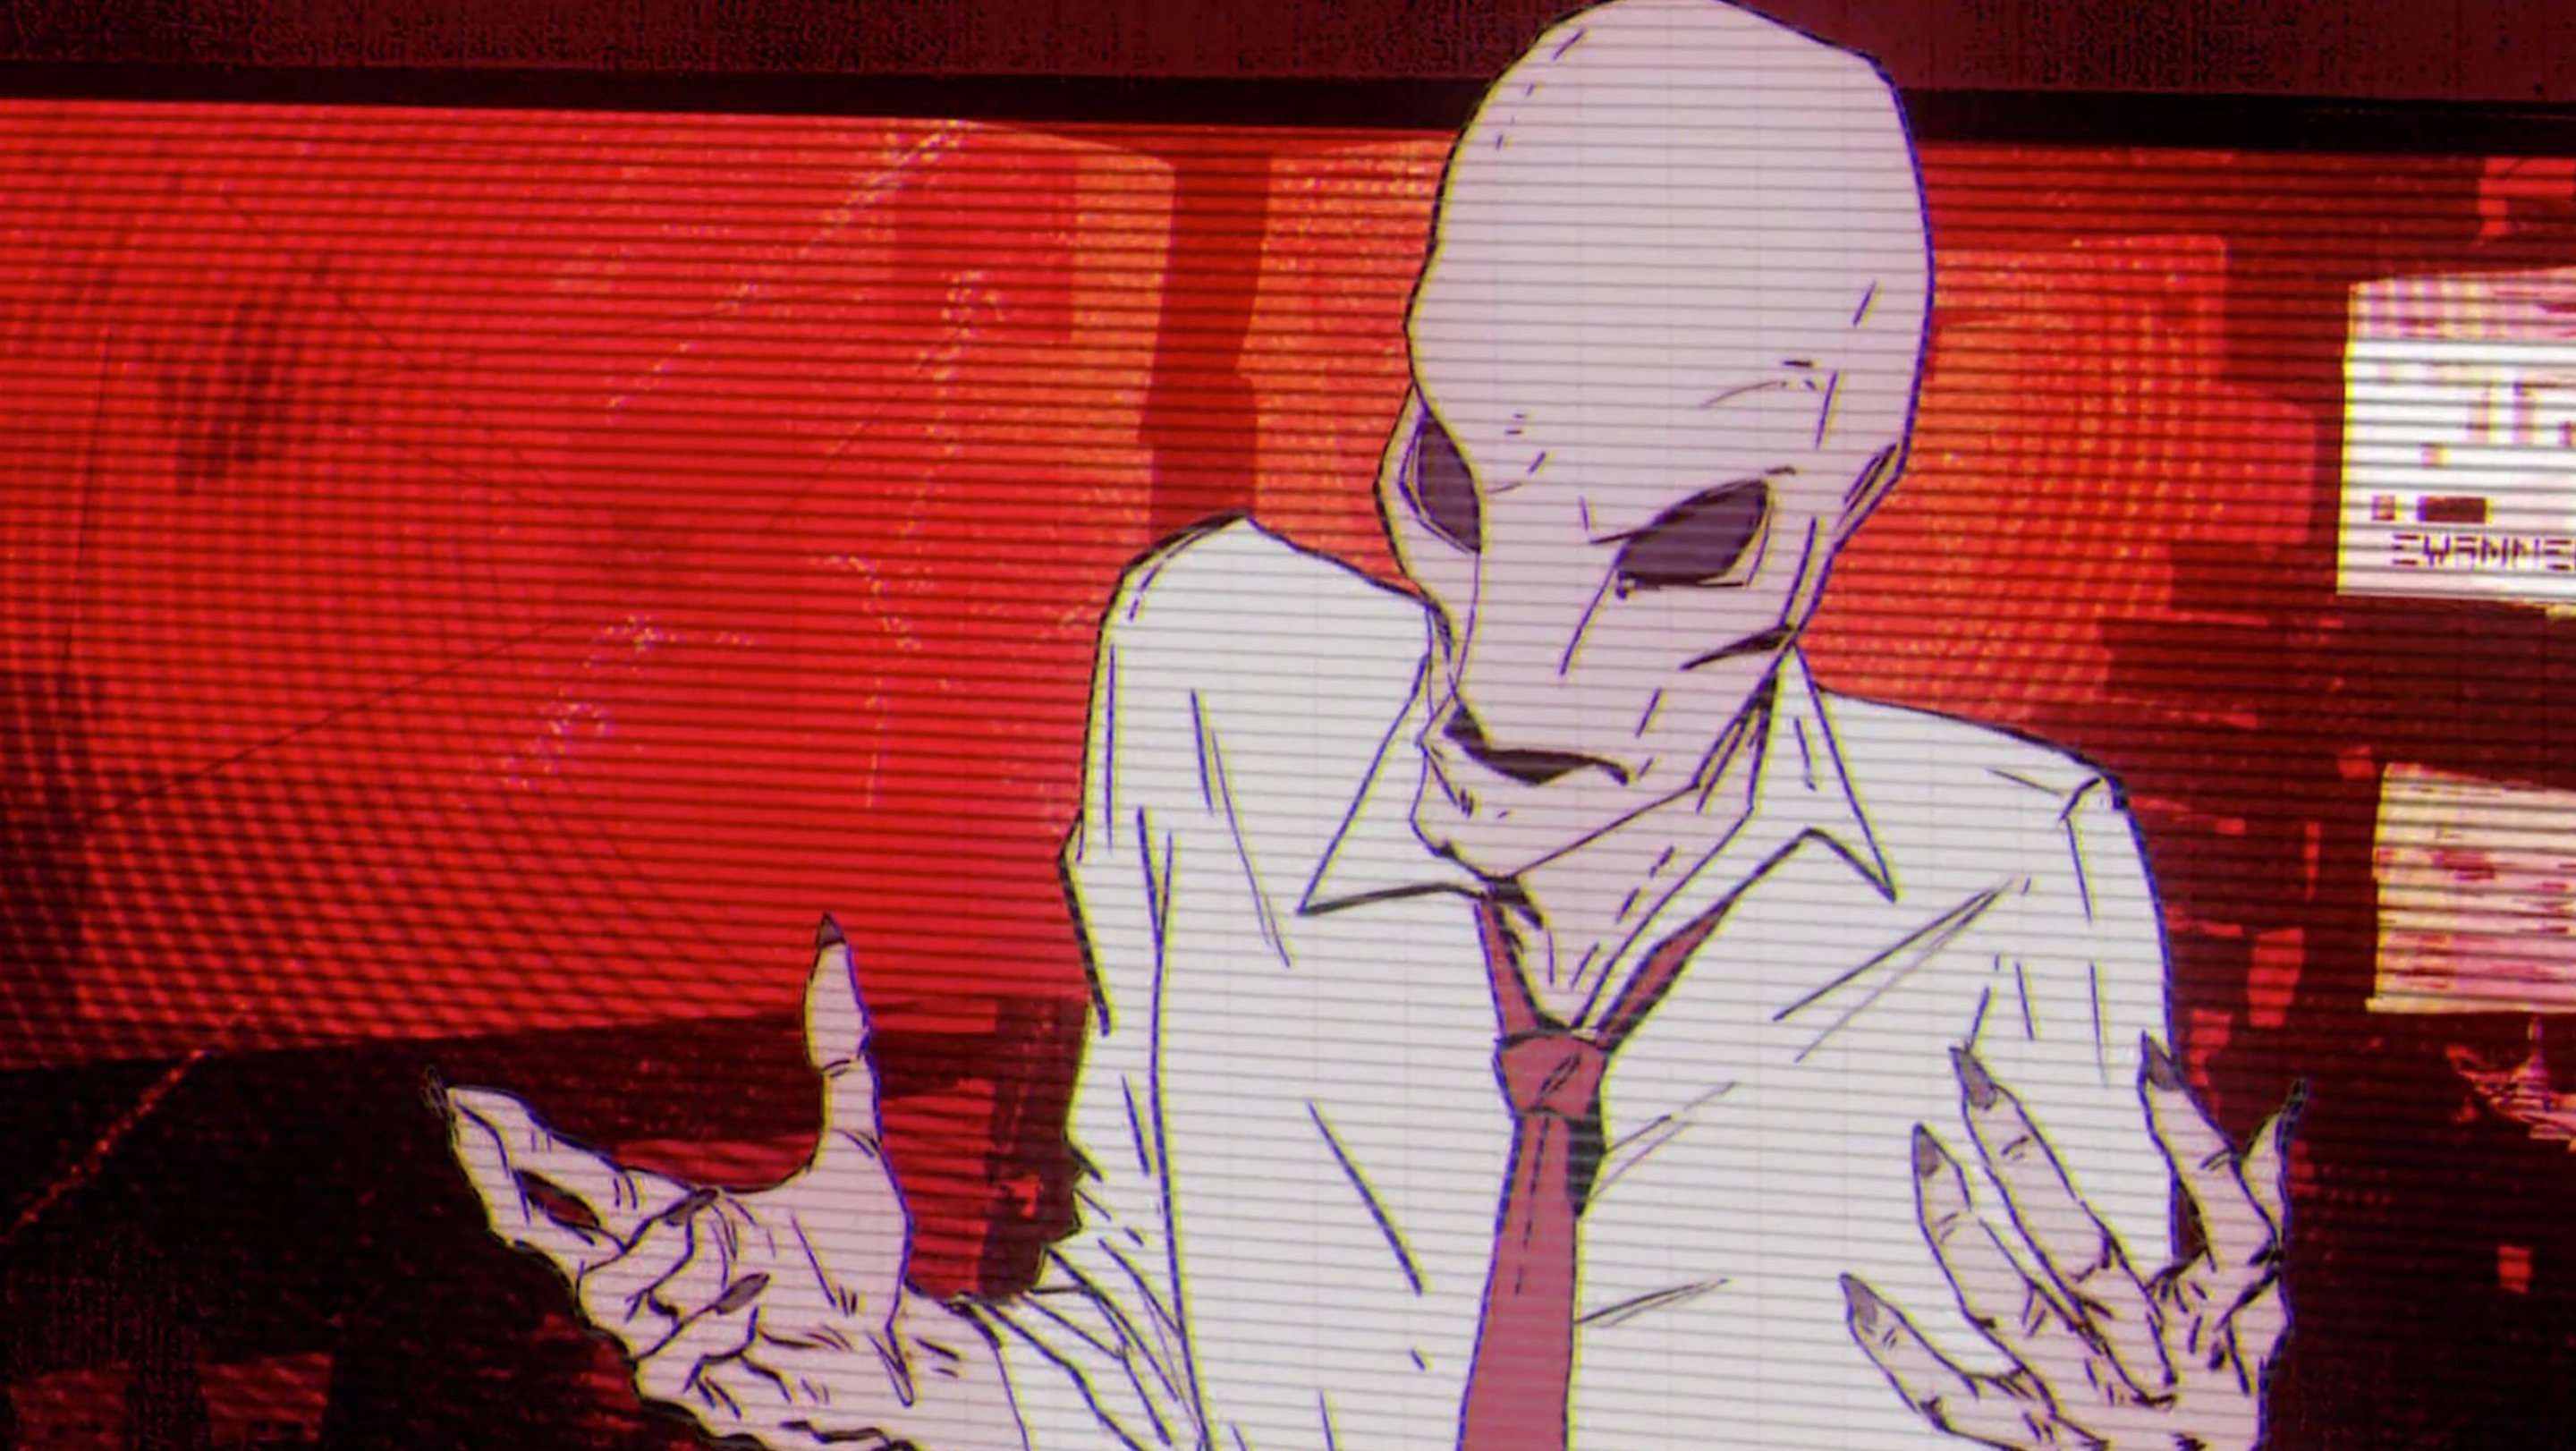 XCOM: Chimera Squad choosing a Factions to investigate first guide